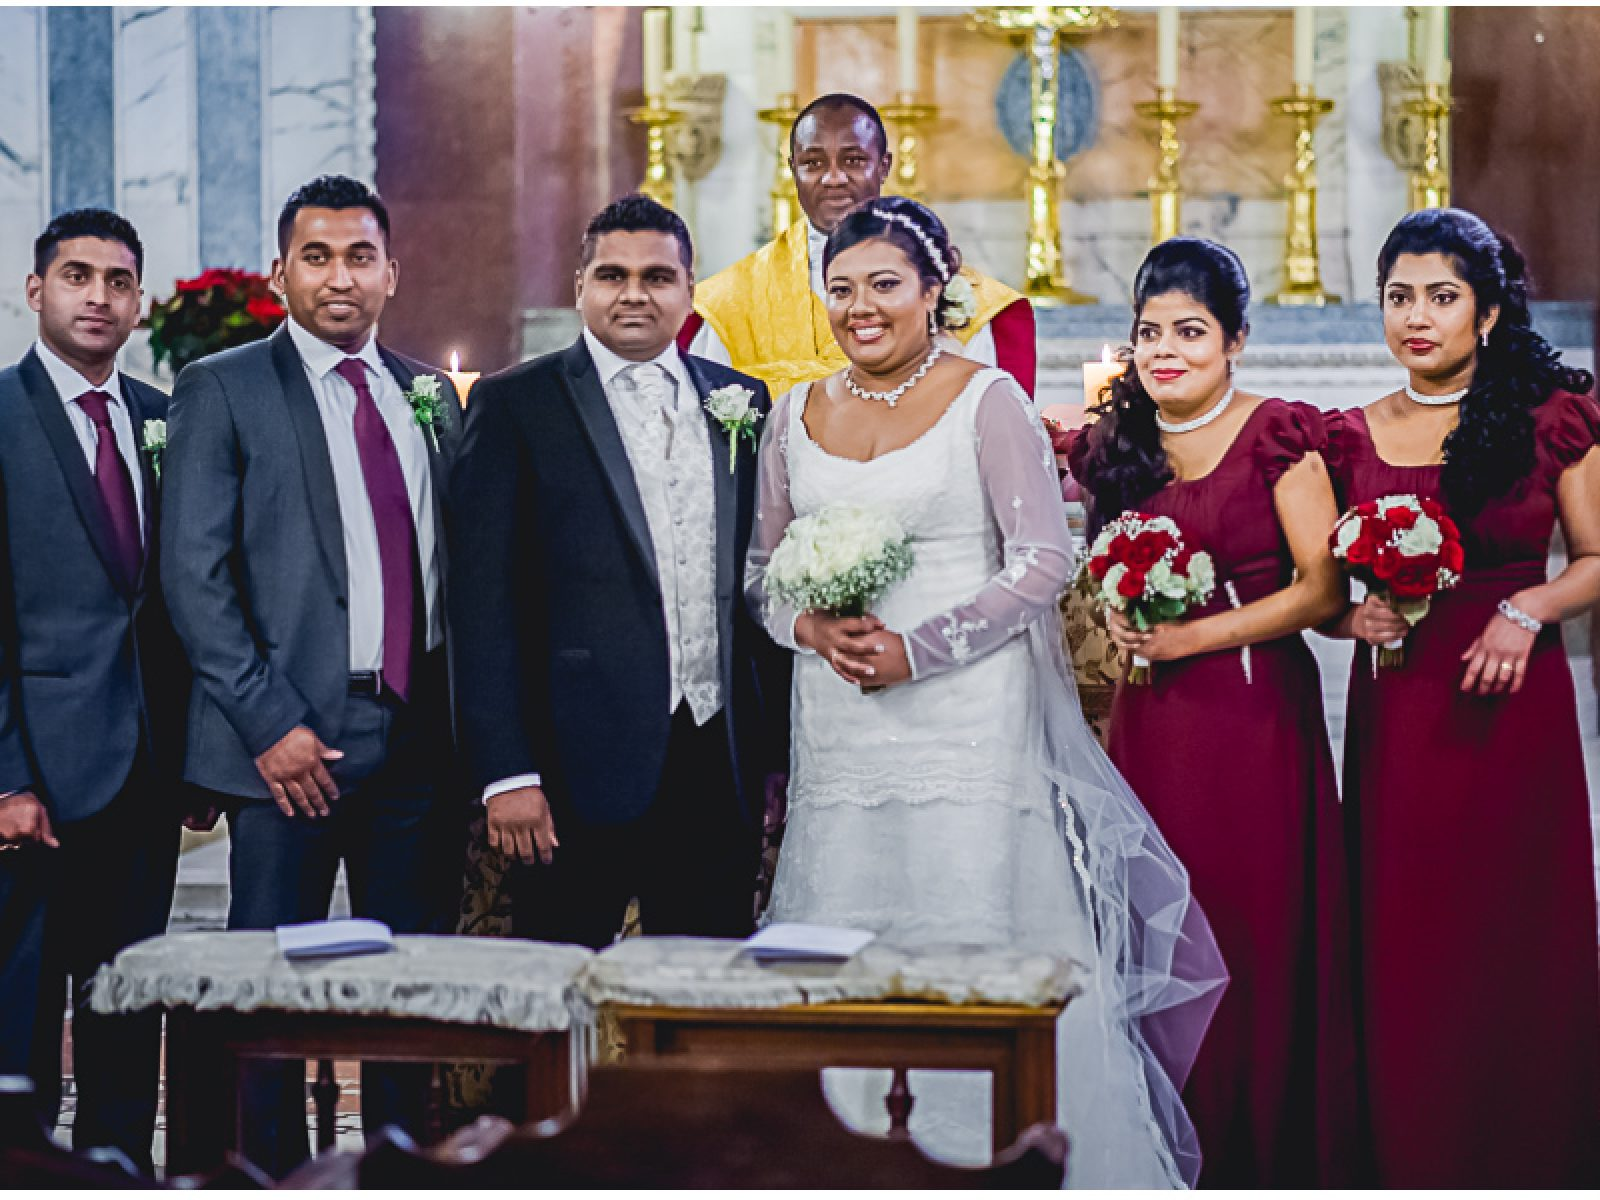 621 1600x1200 - Darshani and Anthony - wedding photographer in London